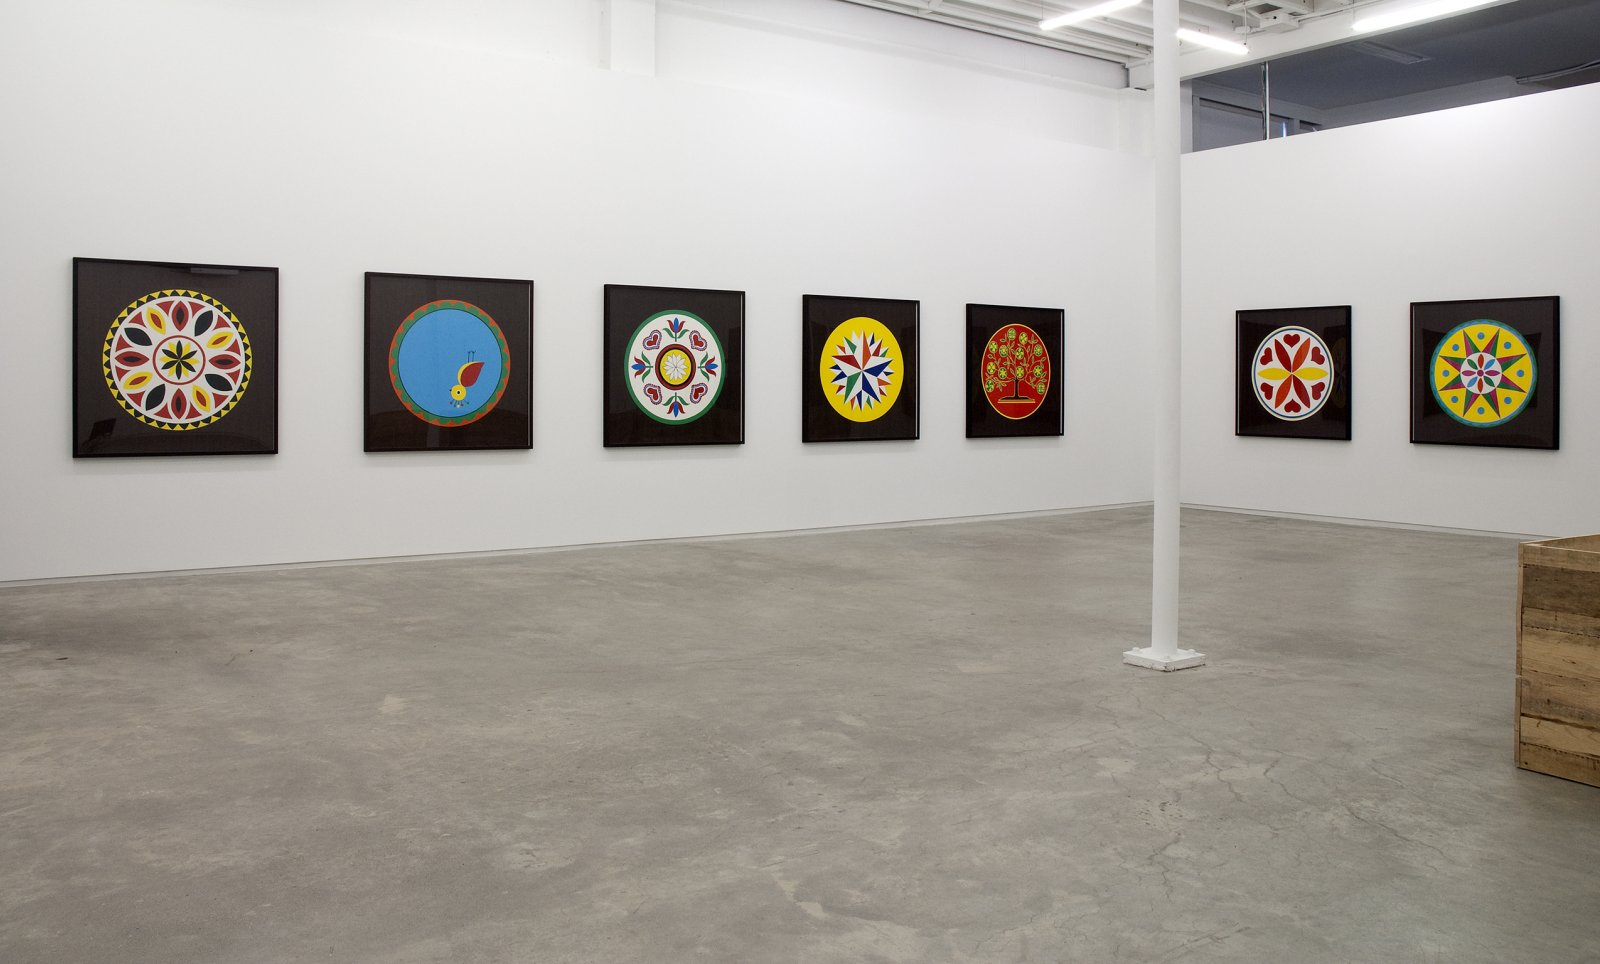 Myfanwy MacLeod, installation view, Gold, Catriona Jeffries, 2009 by Myfanwy MacLeod